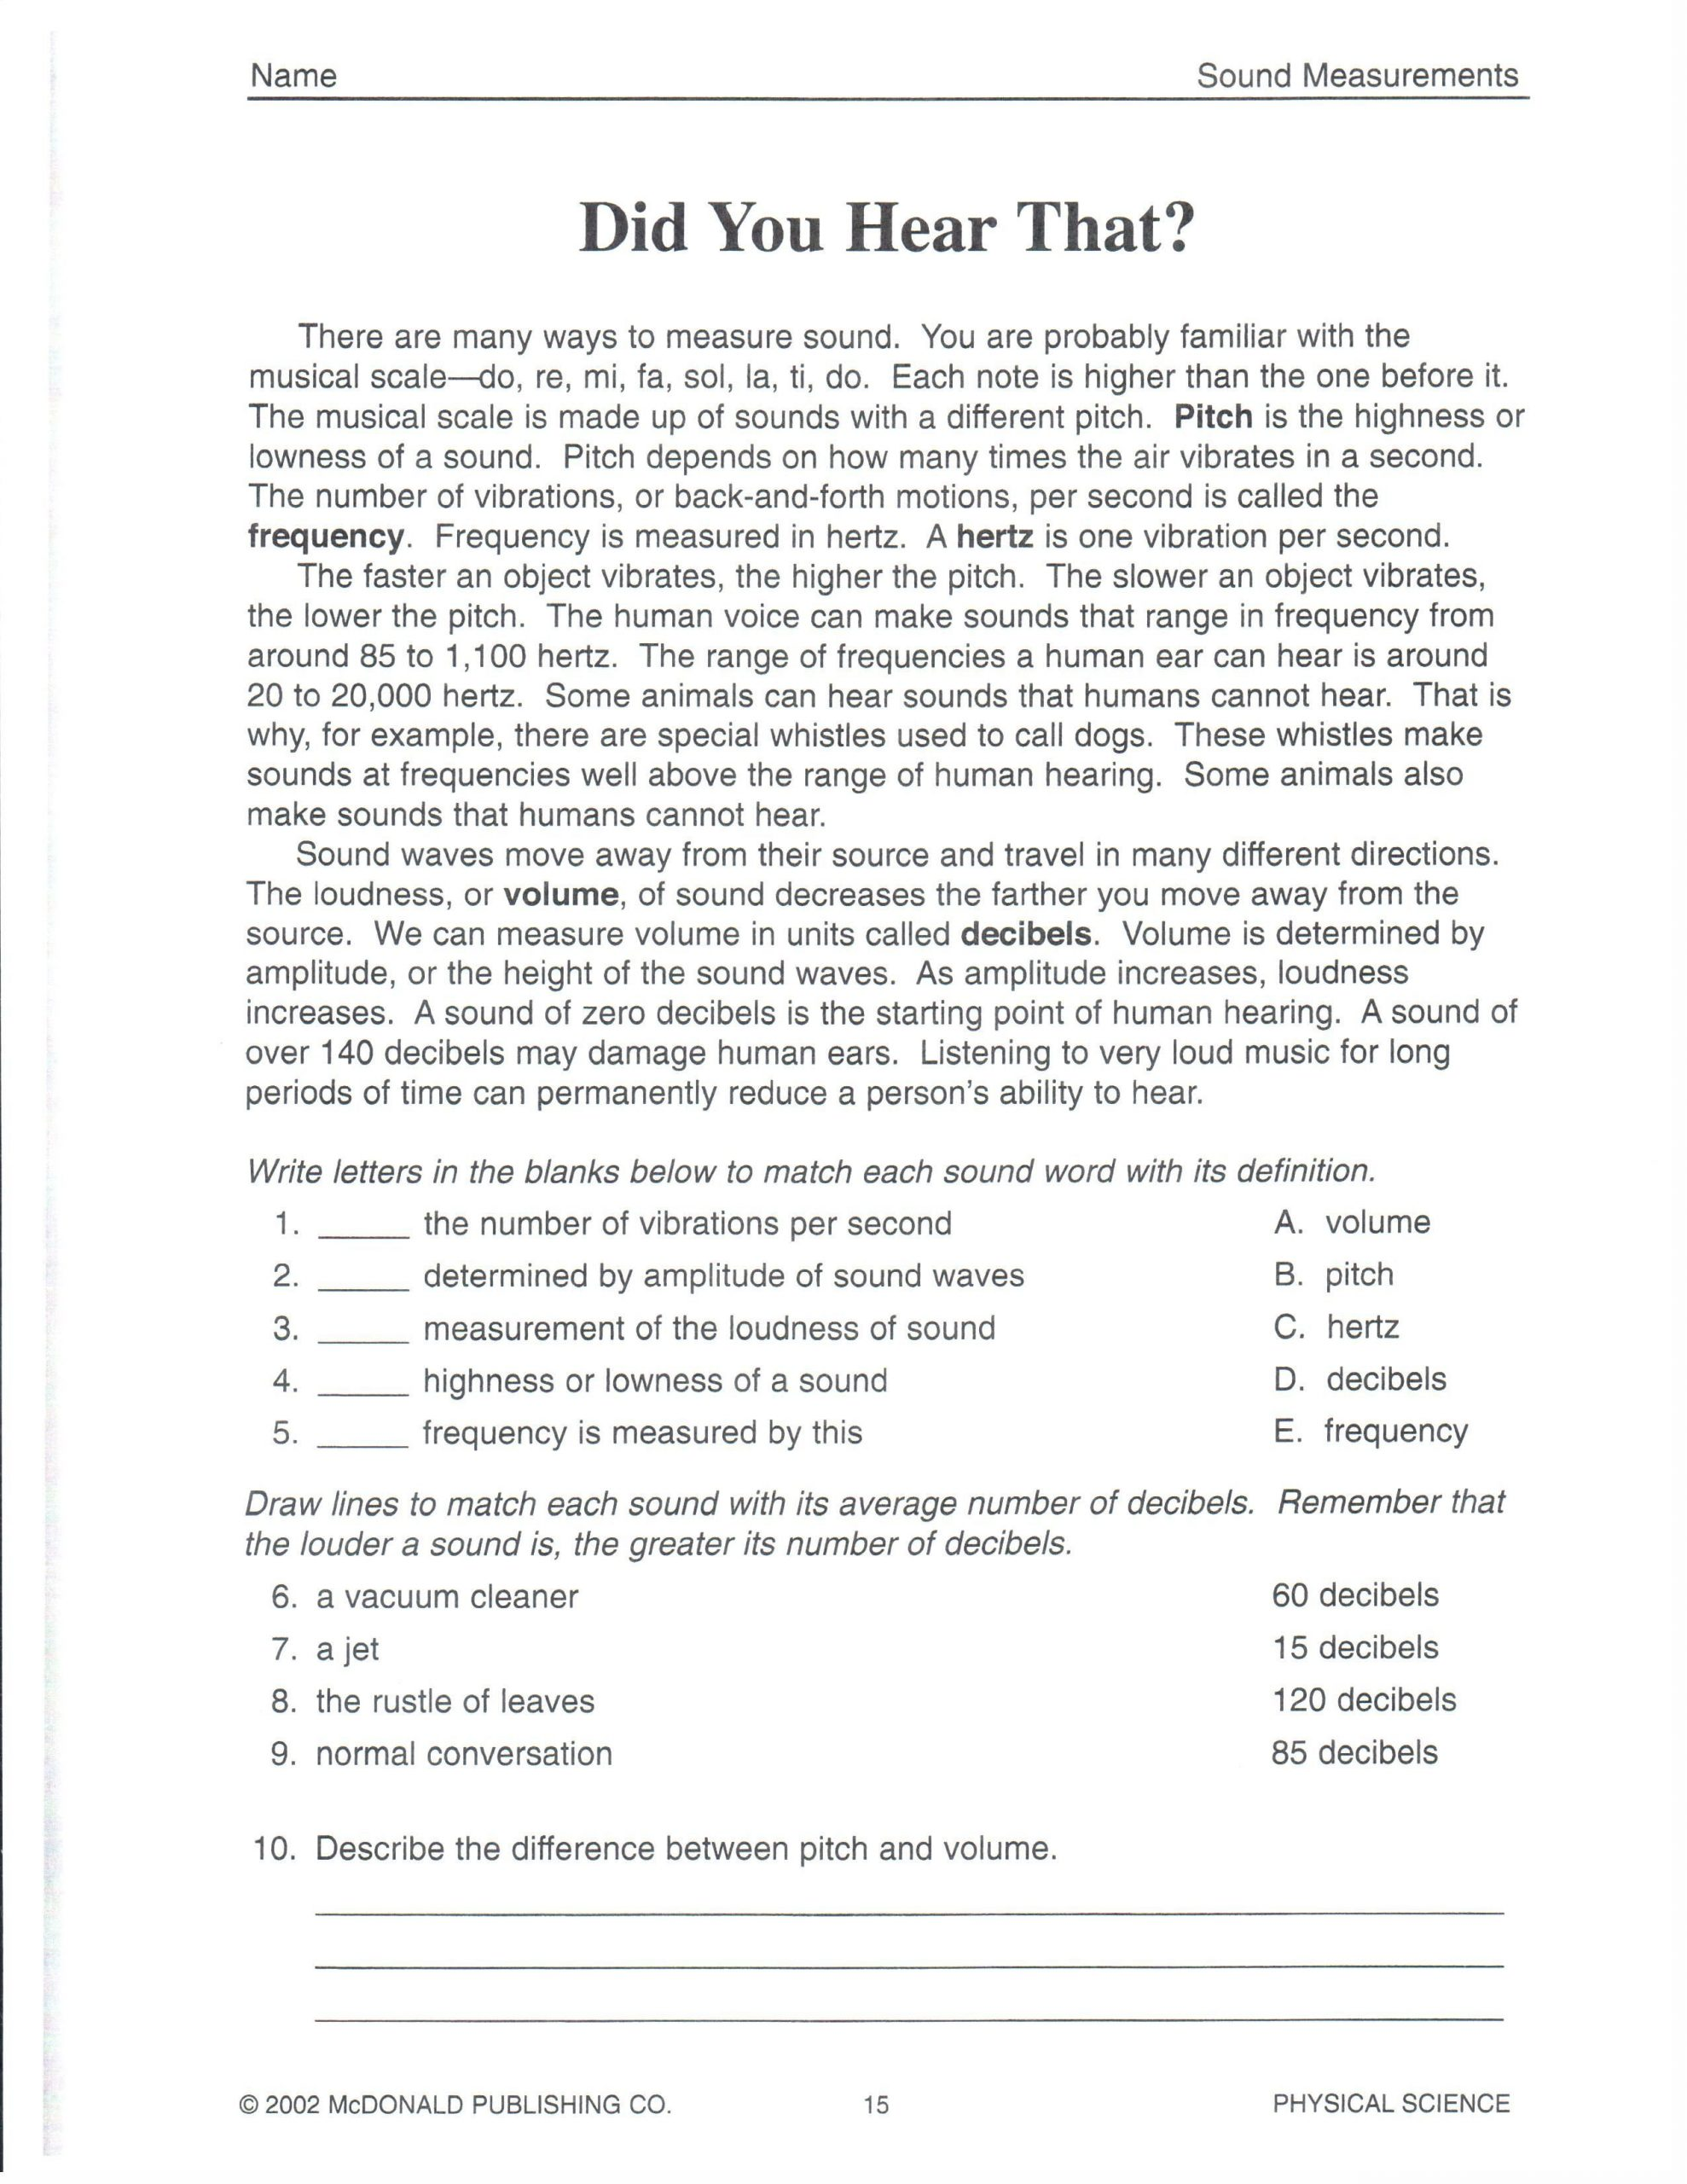 Science Worksheets for 8th Grade Physical Science Did You Hear that 101roxm 2 550—3 300